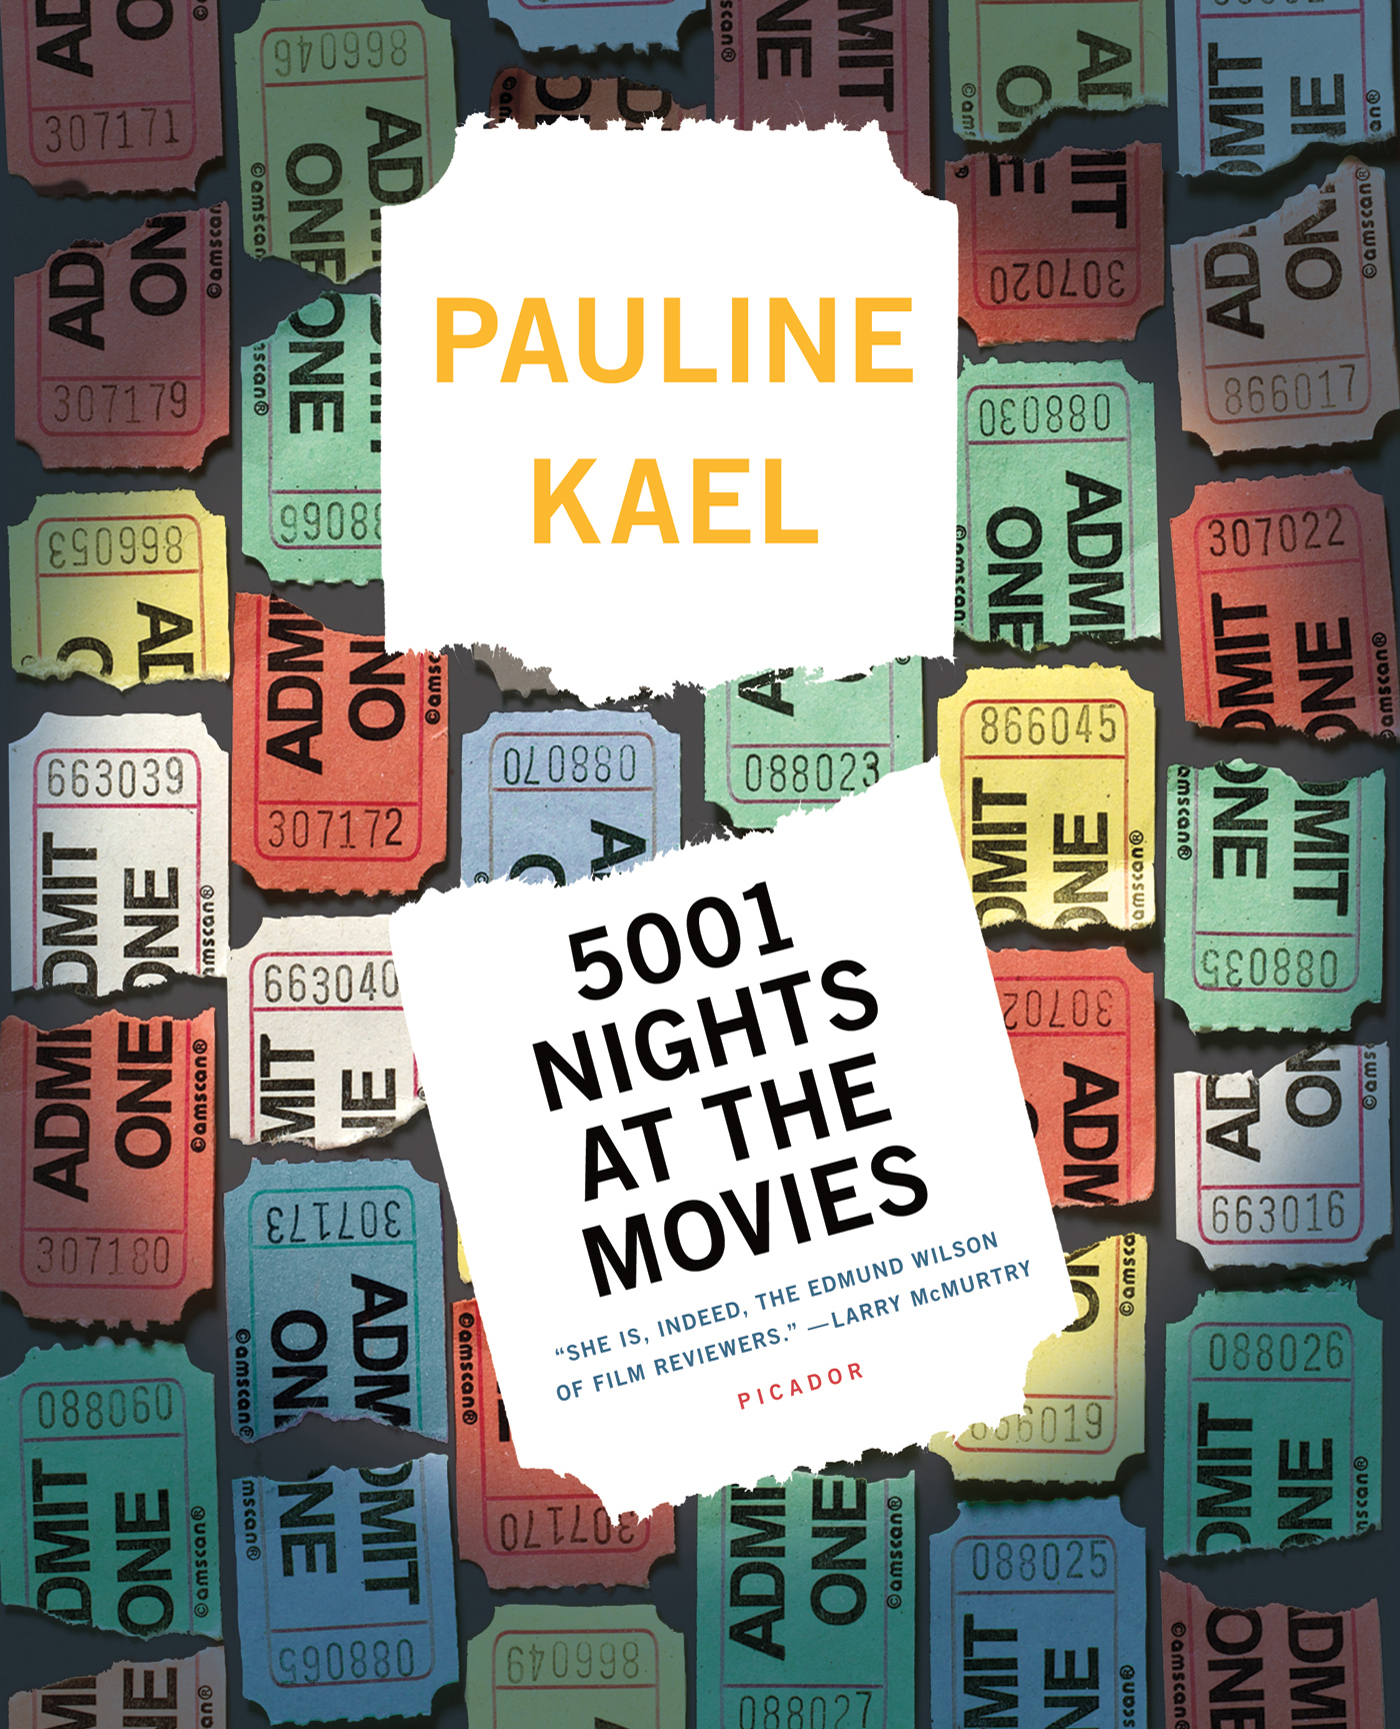 5001 Nights at the Movies